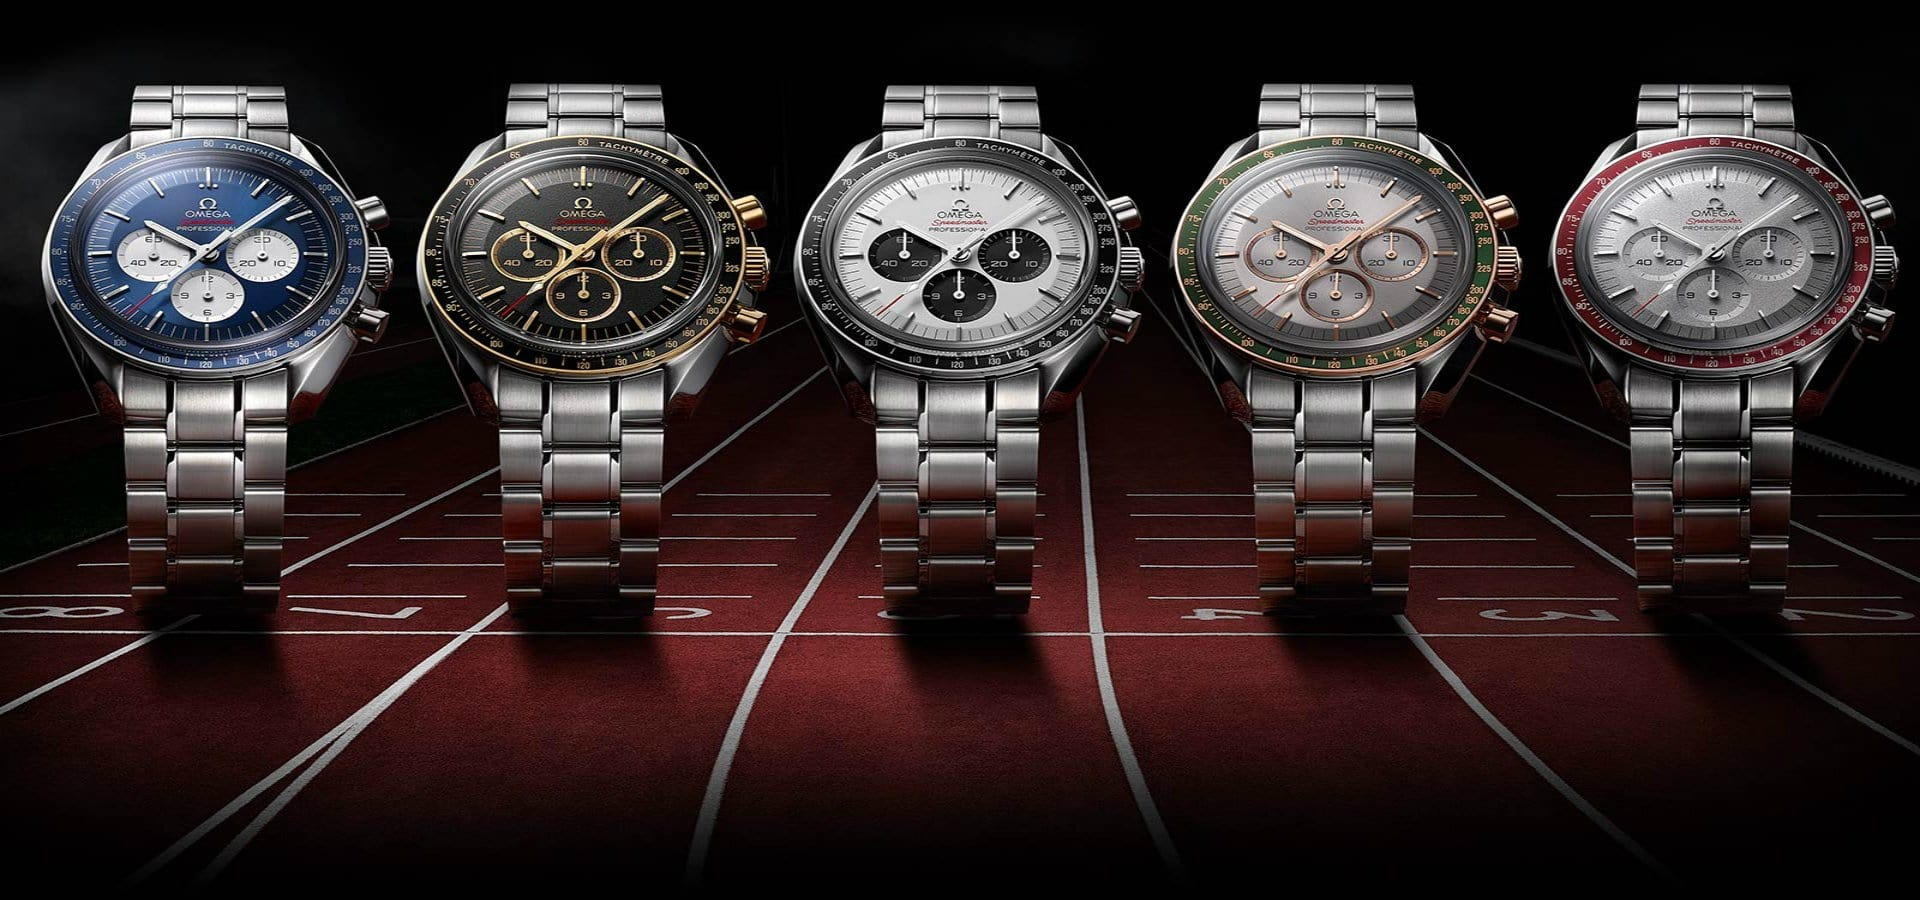 Omega Speedmaster Tokyo 2020 Olympics Collection